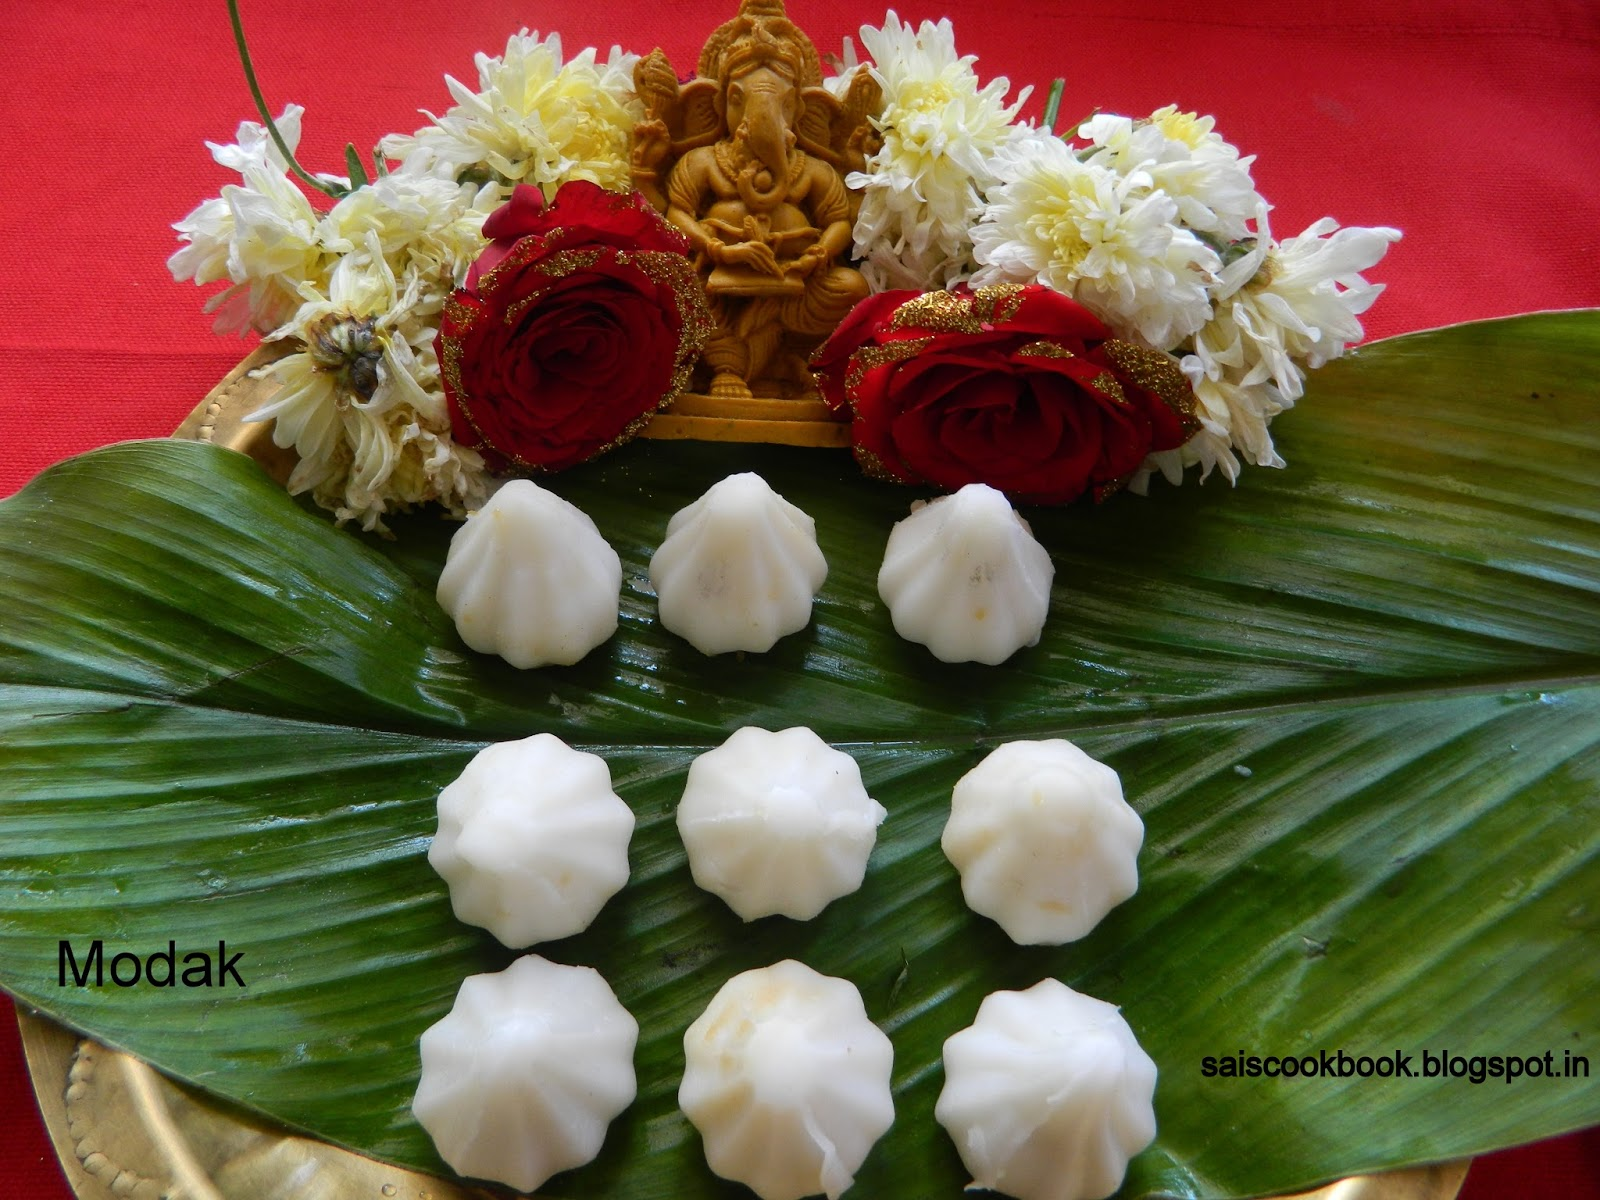 Ganesh chaturthi flowers may flower blog - I Had Clicked Few Pictures But They Are Not Very Clear Happy Ganesh Chaturthi And Gowri Pooja To All Those Are Celebrating